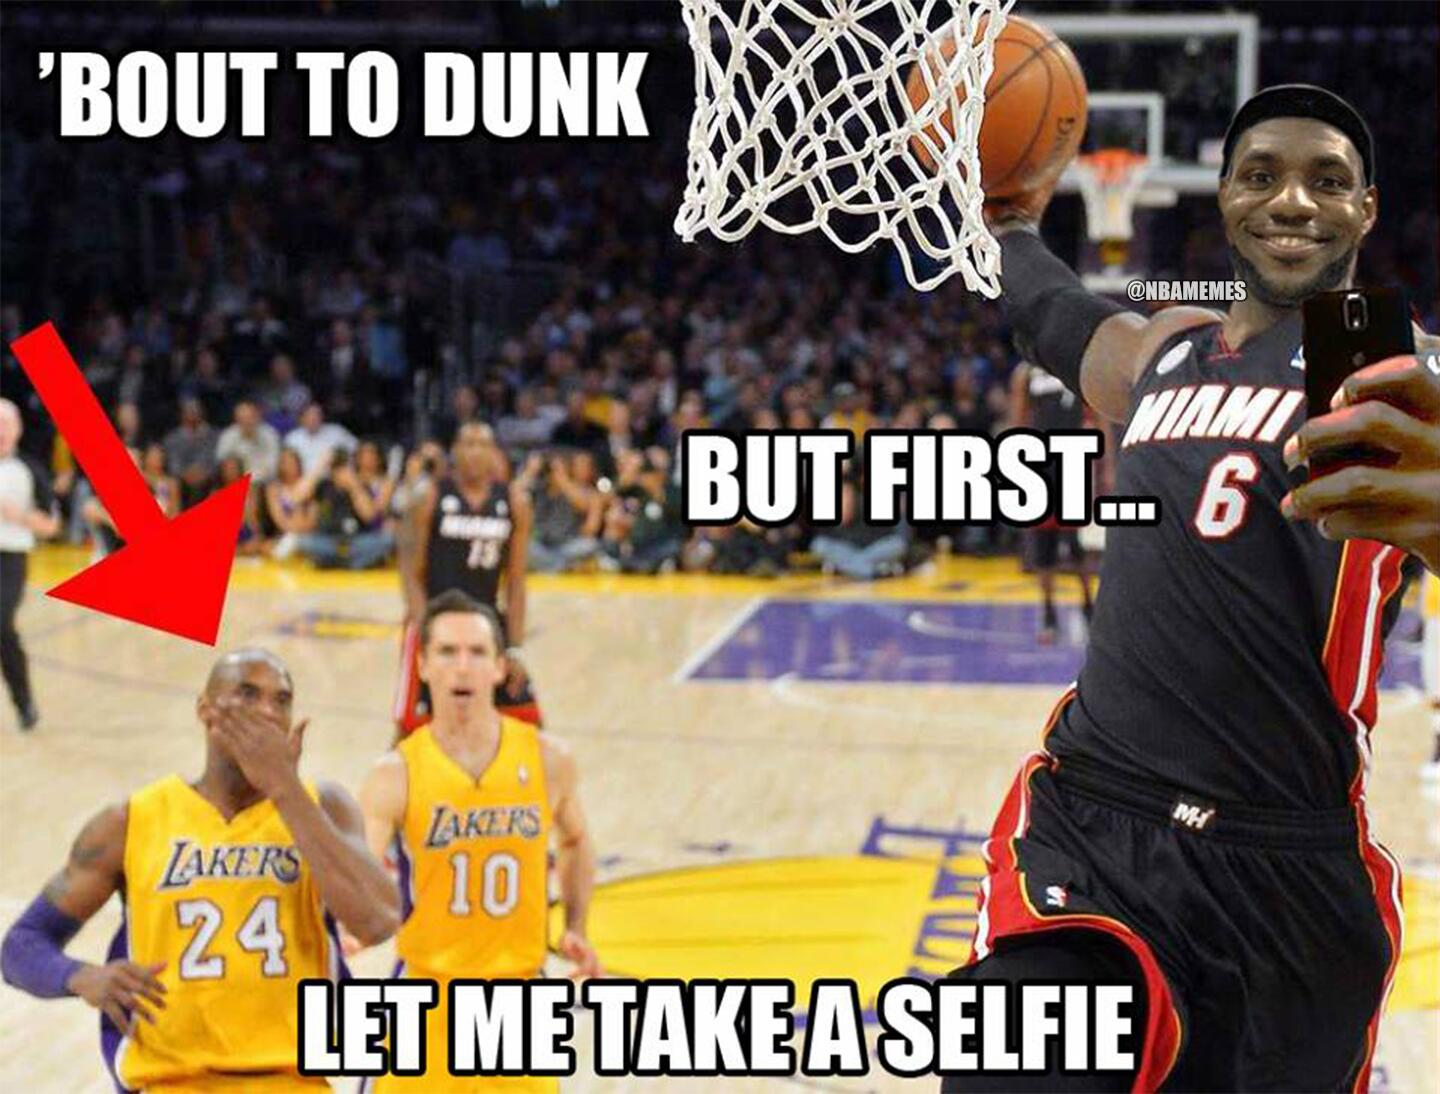 Dunking lebron of pictures james